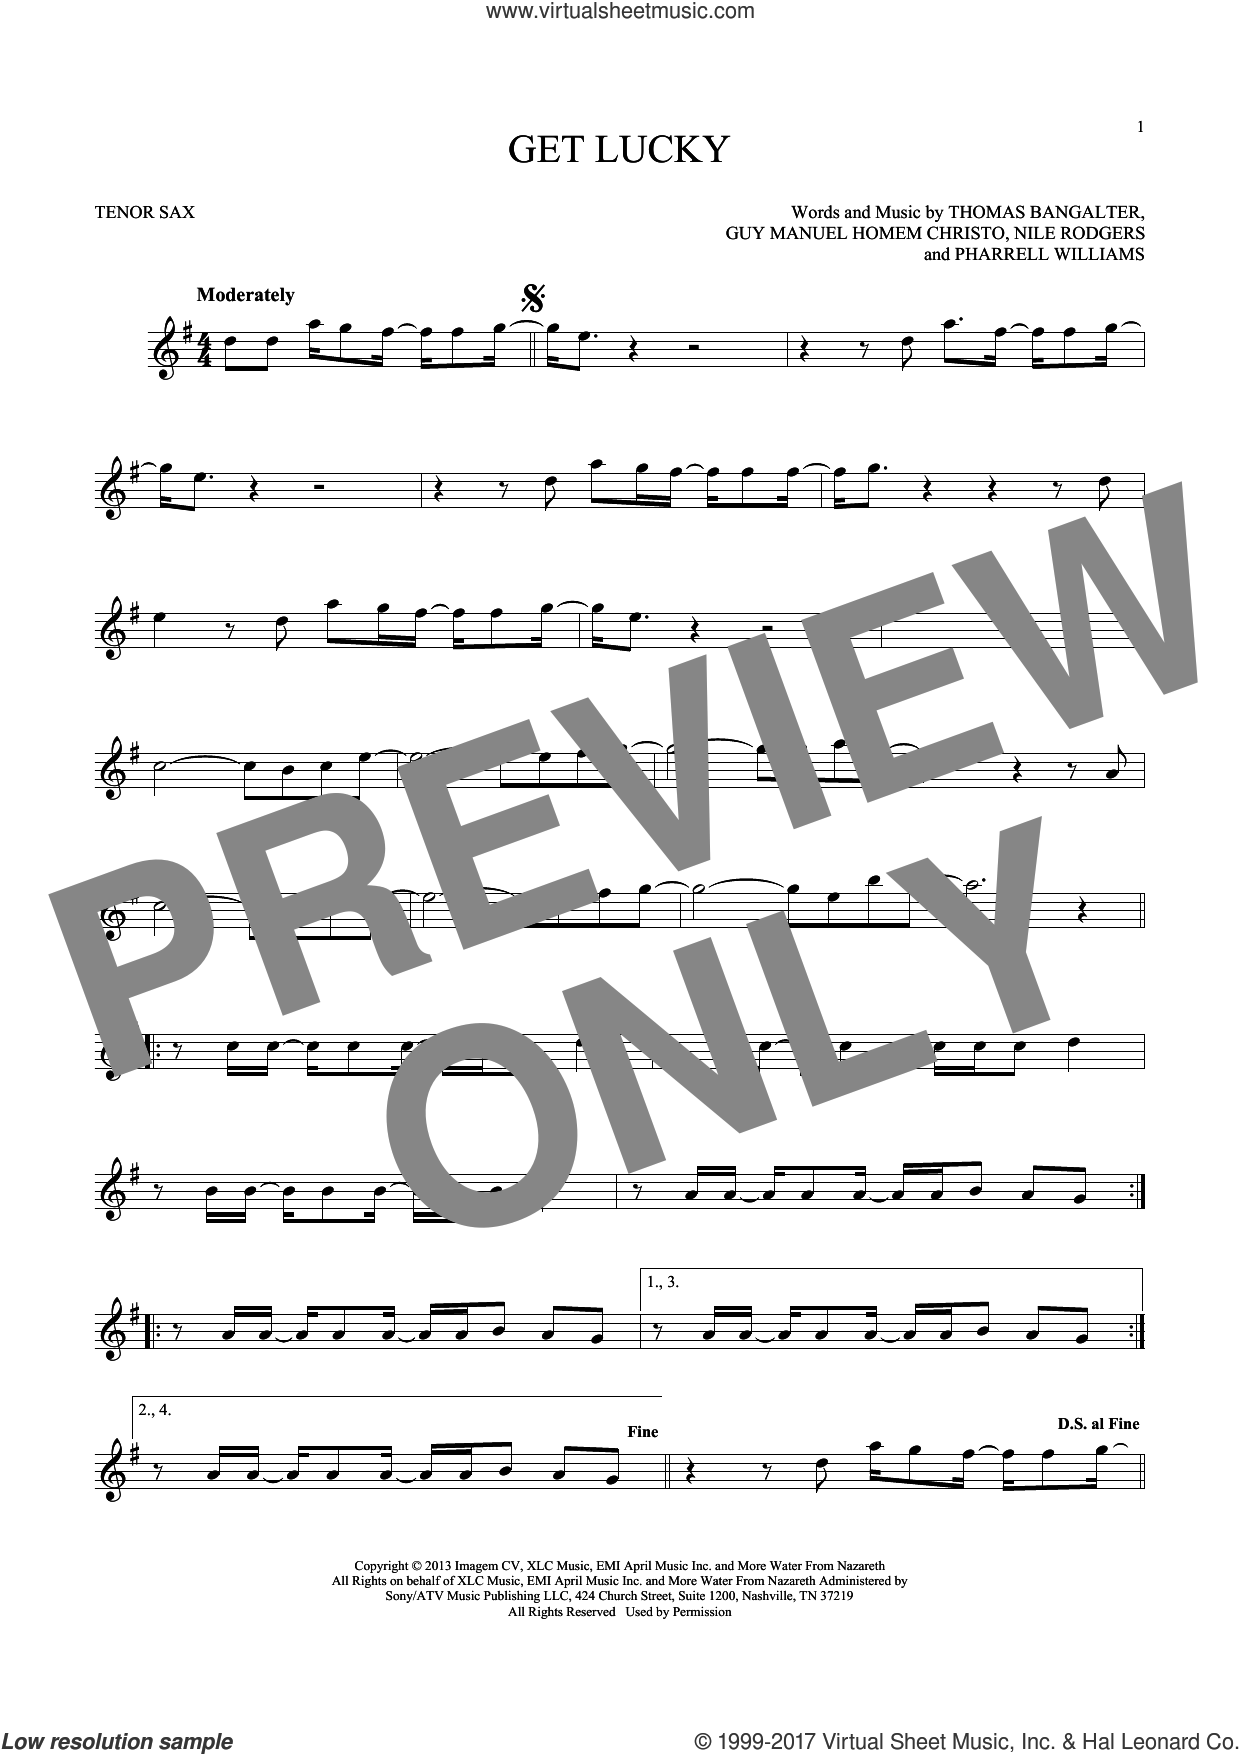 Get Lucky sheet music for tenor saxophone solo ( Sax) by Thomas Bangalter, Daft Punk Featuring Pharrell Williams, Nile Rodgers and Pharrell Williams. Score Image Preview.